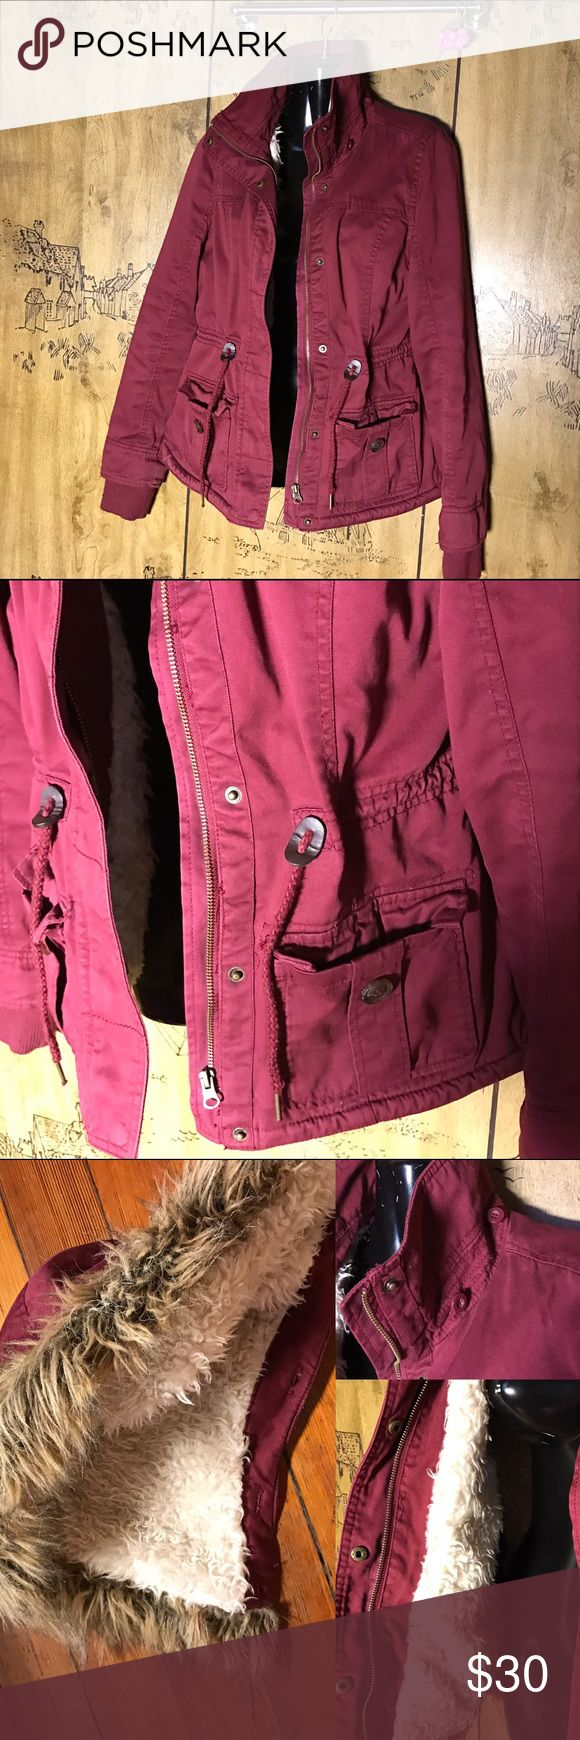 Arizona Jeans Jacket 🎨 - Maroon • Arizona Jeans brand •  signs of wear, *GUC* Inside Lined with Fur The back does flip up a bit, as shown in photo Detachable hoodie    🚫 No Trades!!! Thank You. ✅Reasonable Offers Considered. 🛒Use Bundle Feature to Receive Discount! 🆓🎁For Orders Over $40. Arizona Jean Company Jackets & Coats